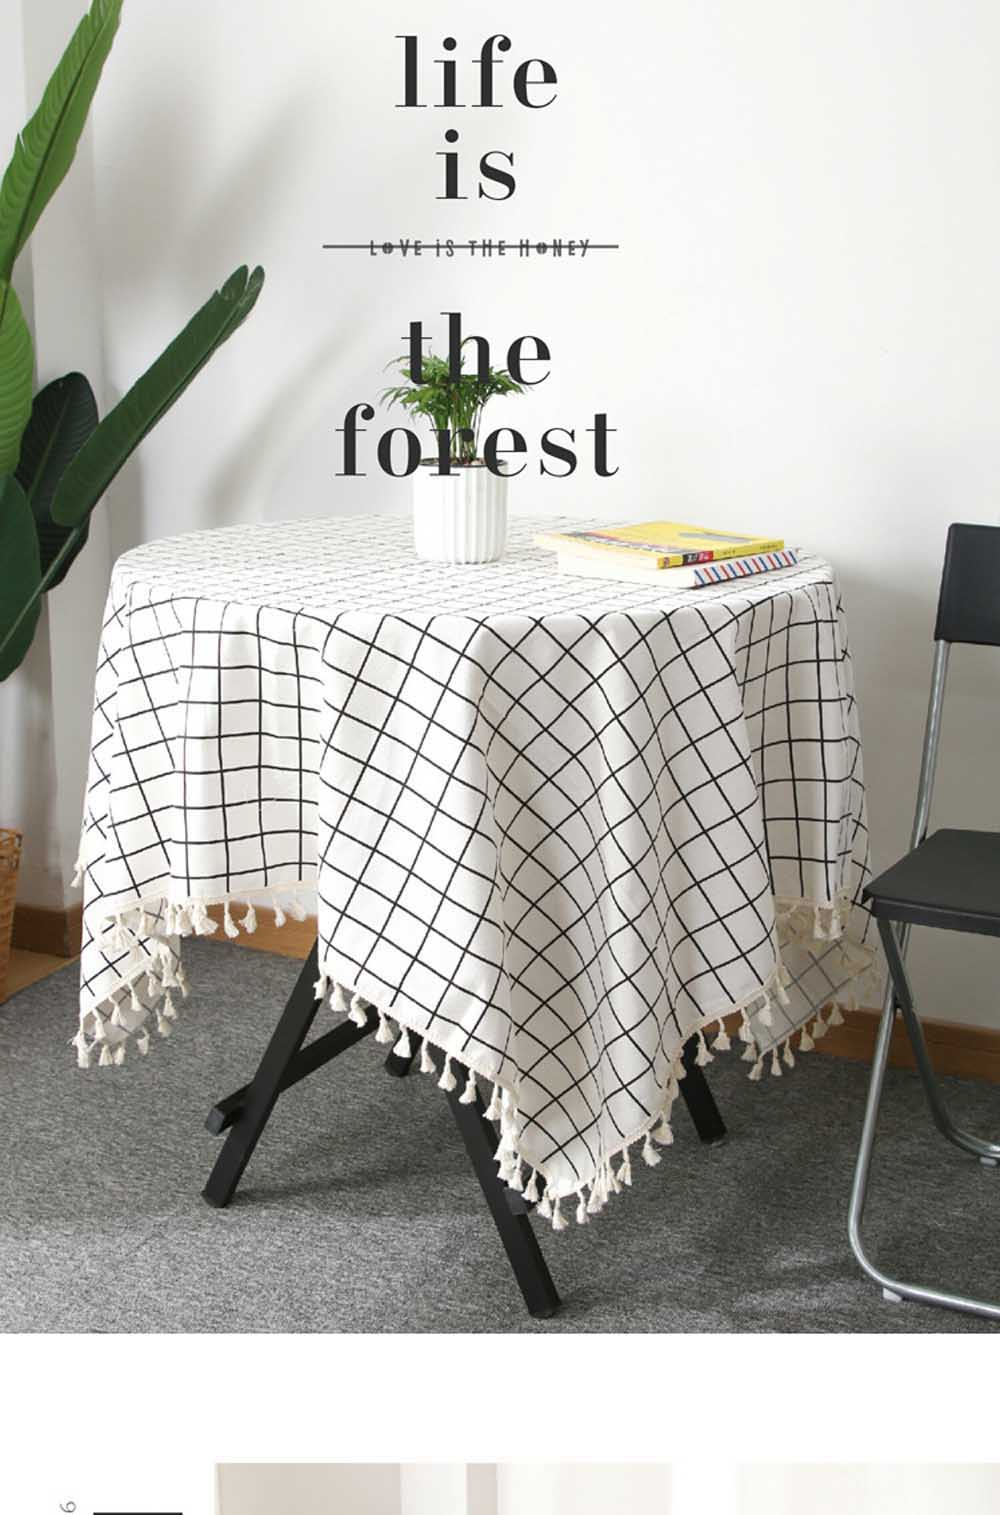 Cotton Linen Tablecloth Household Plaid Striped Printing Table cloth Pendant Lace Decor Rectangular Tea Table Pad Meal Cloth